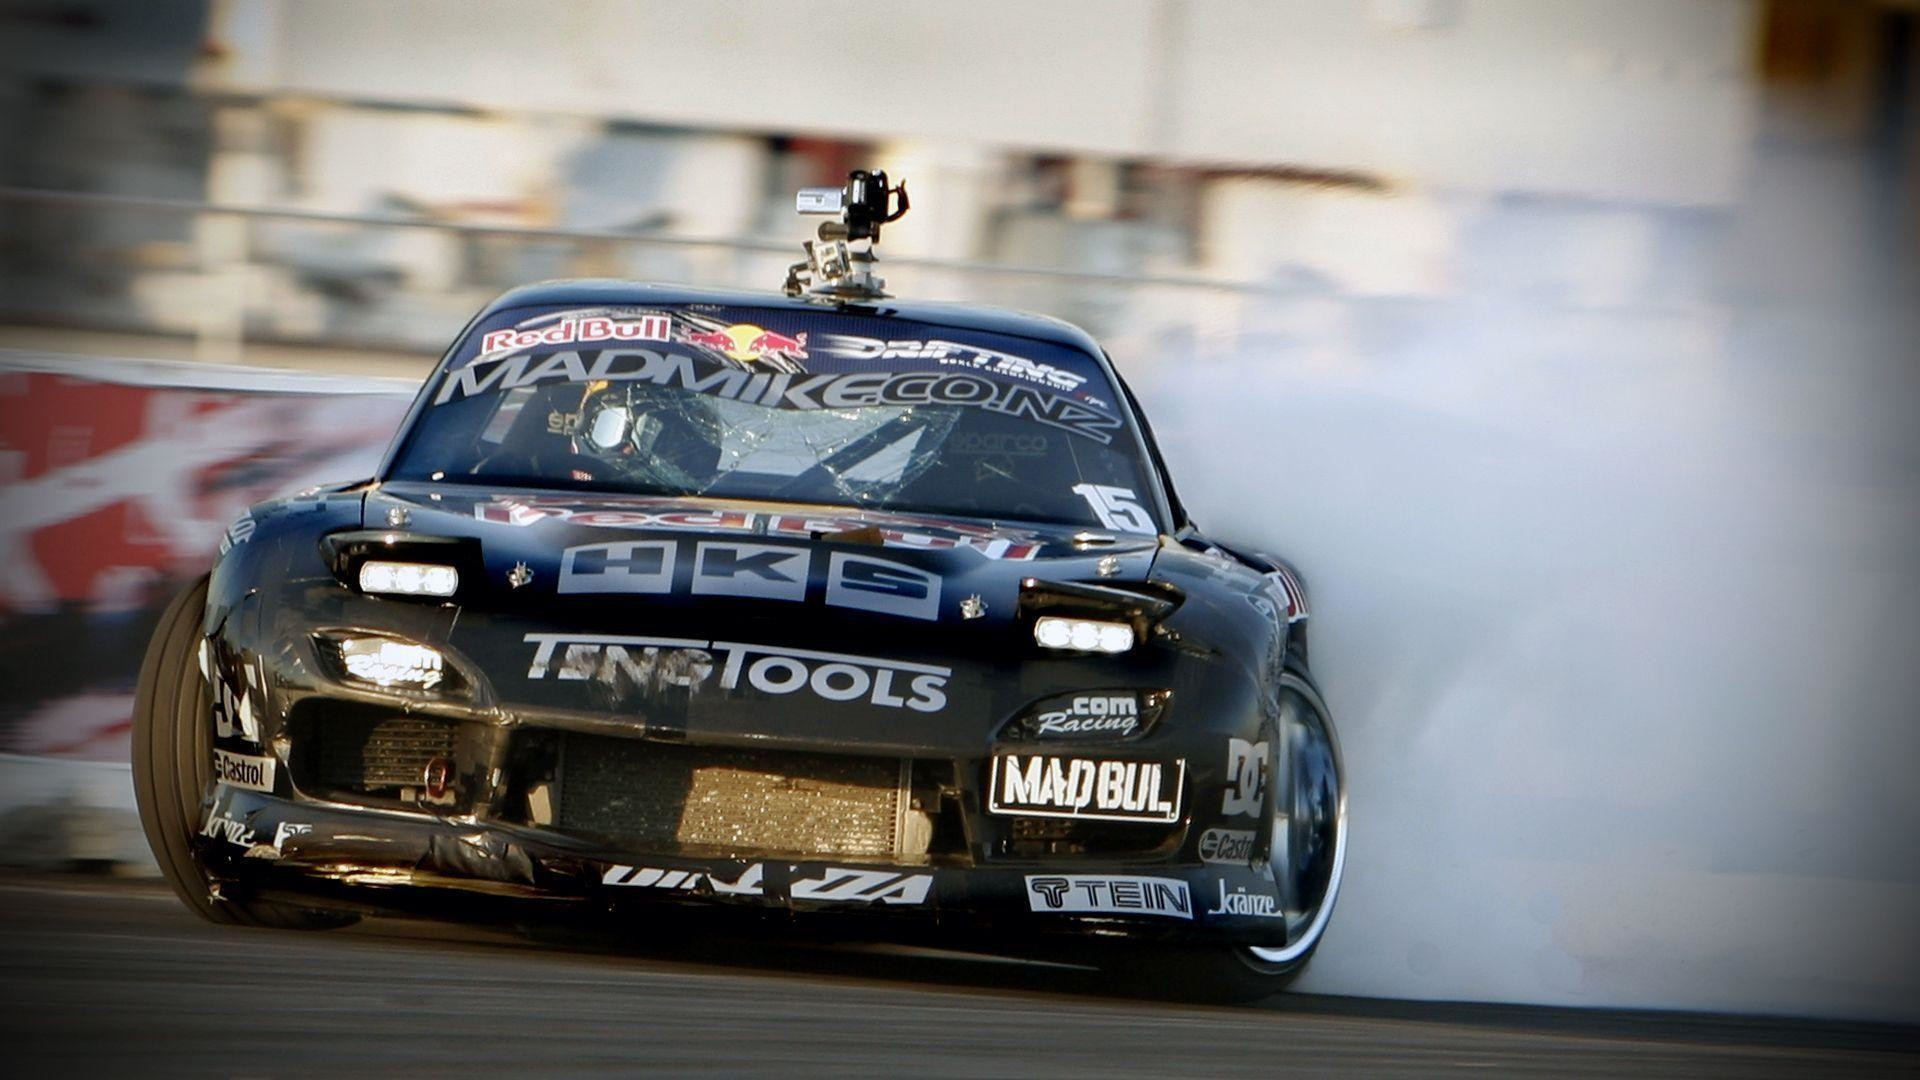 Race Cars Wallpapers